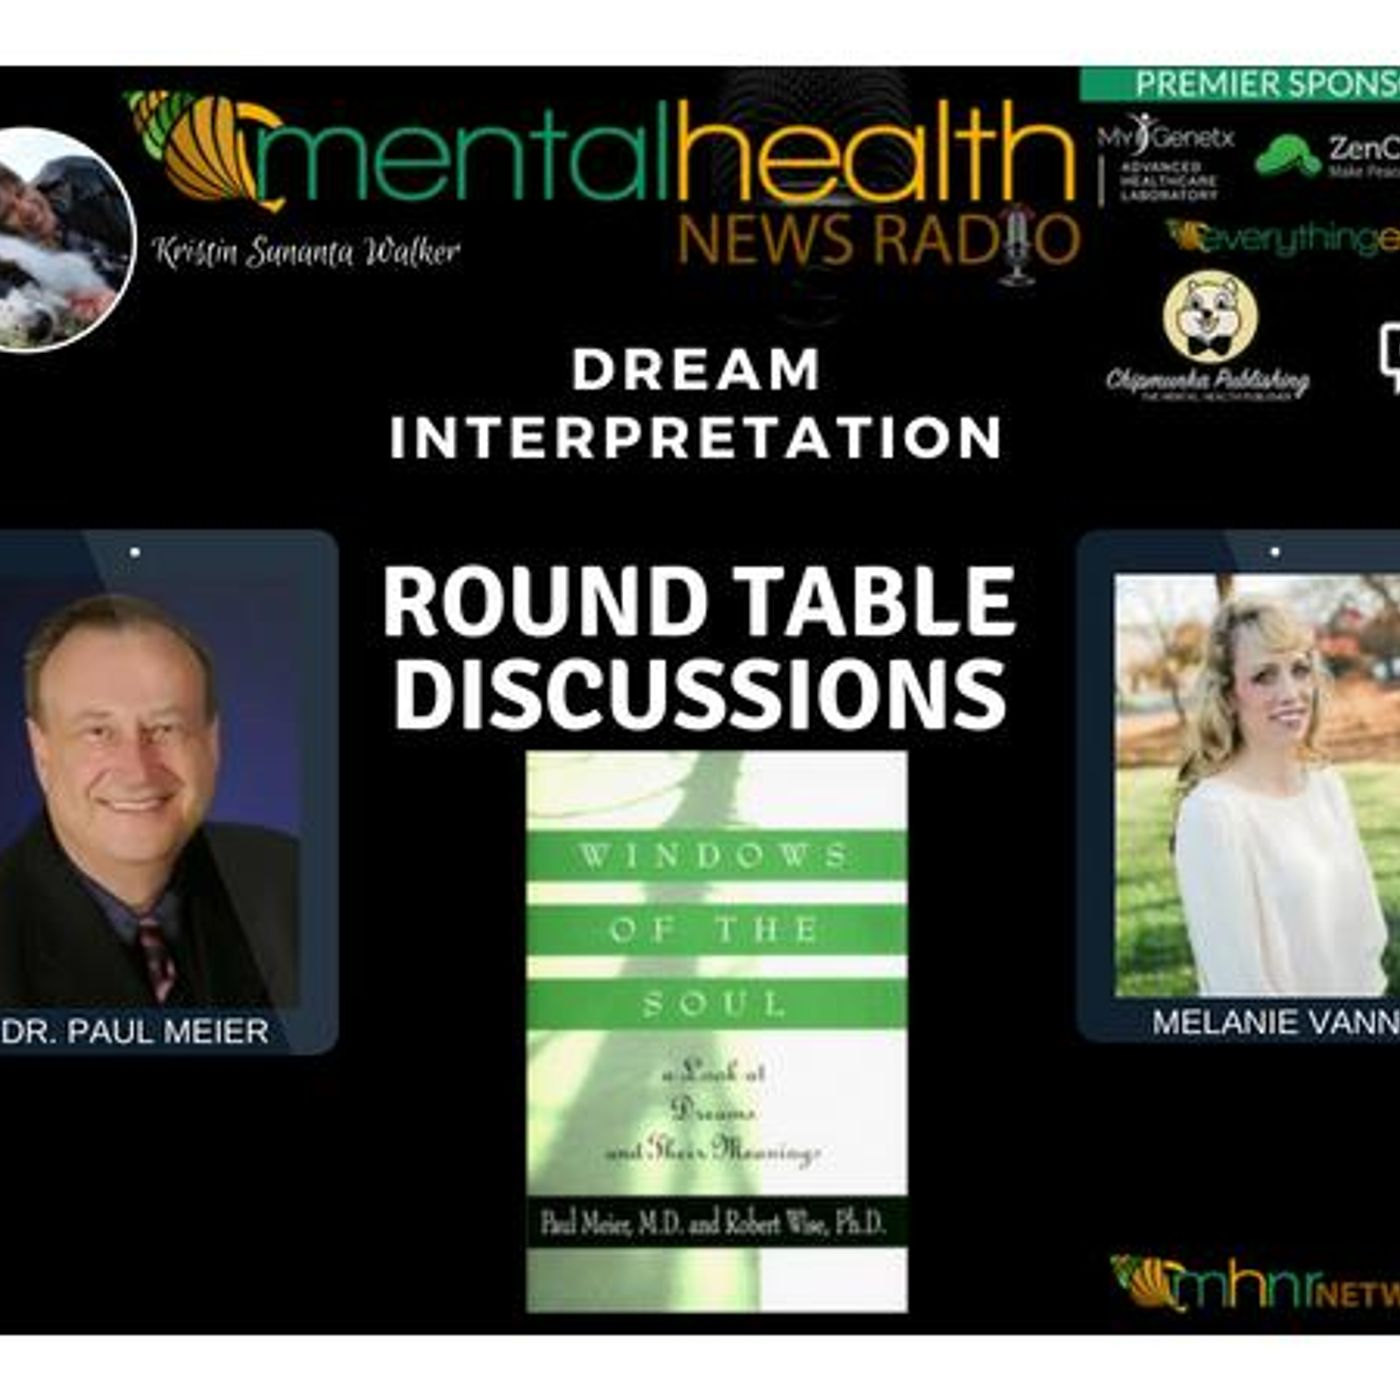 Mental Health News Radio - Round Table Discussions with Dr. Paul Meier: Dream Interpretation